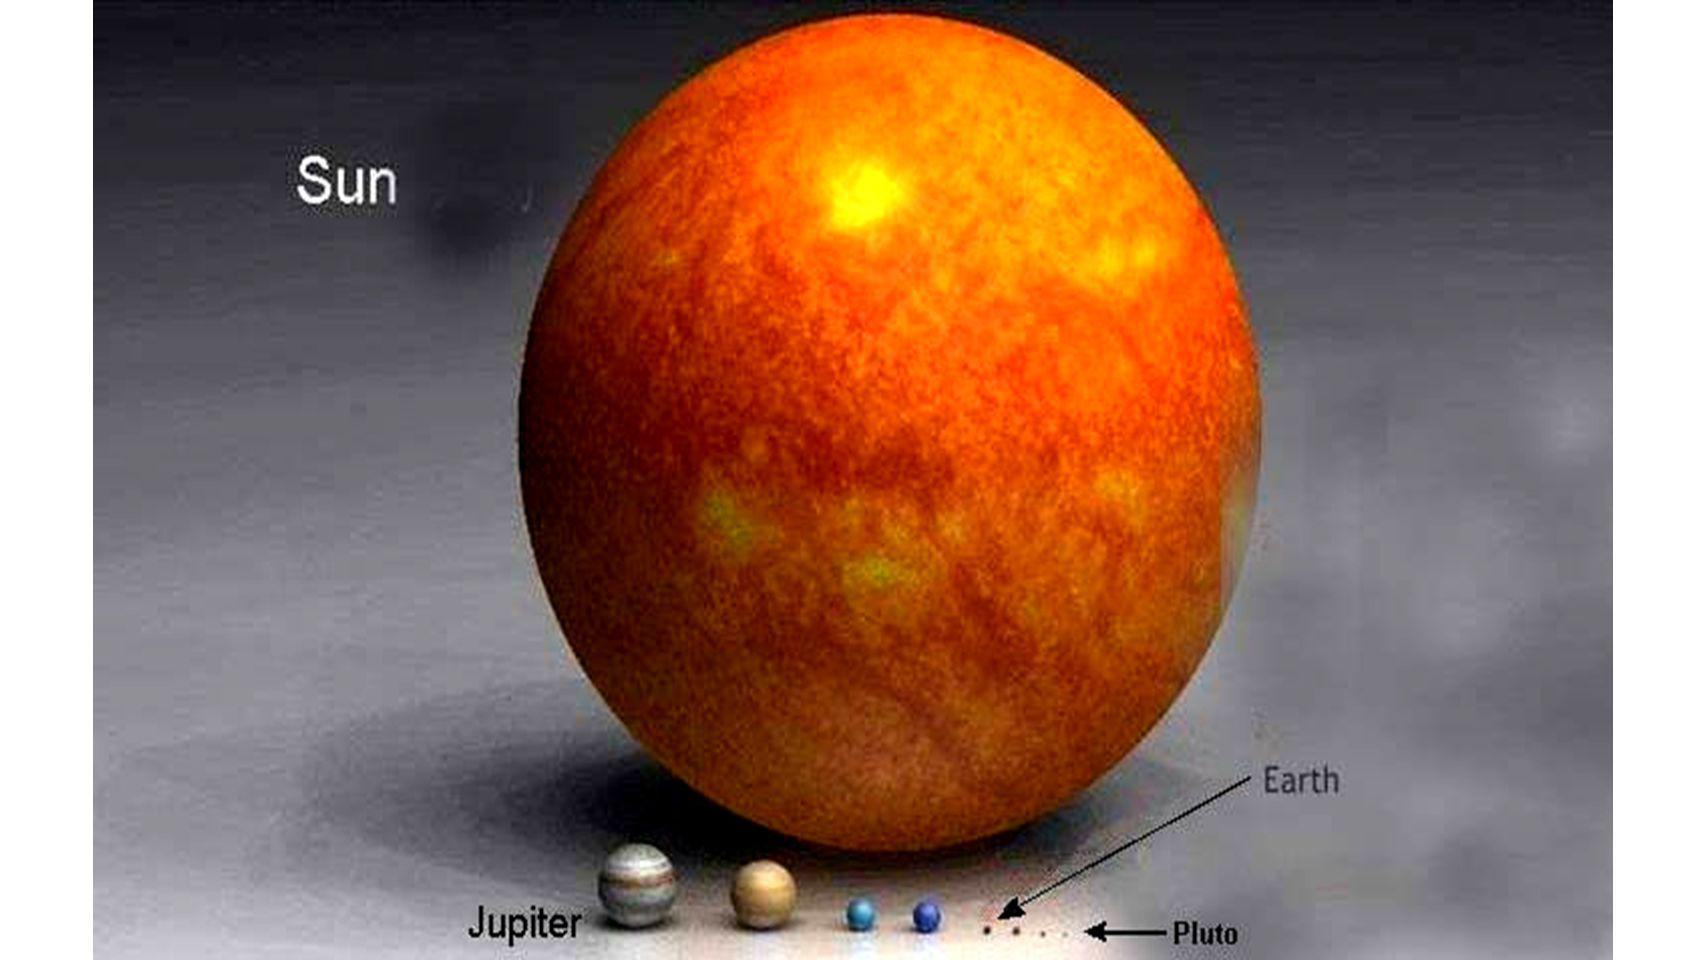 SUN EARTH The sun is so large that it would take over 100,000 earths placed side by side just to span the diameter of the sun.